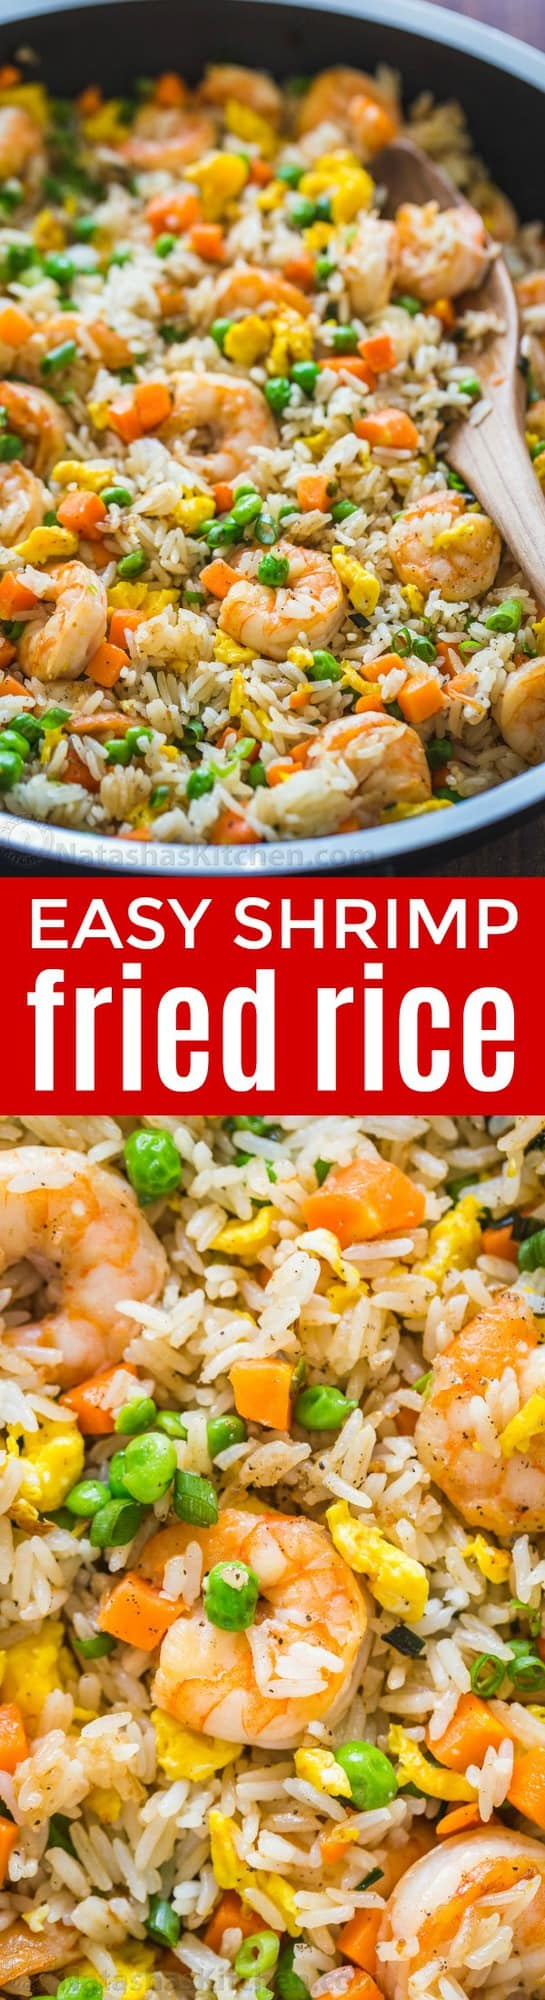 Shrimp Fried Rice is one of my go-to 30-minute meals and my family can't get enough of it. Fried Rice is the best way to use leftover rice and it always dissapears fast! | natashaskitchen.com